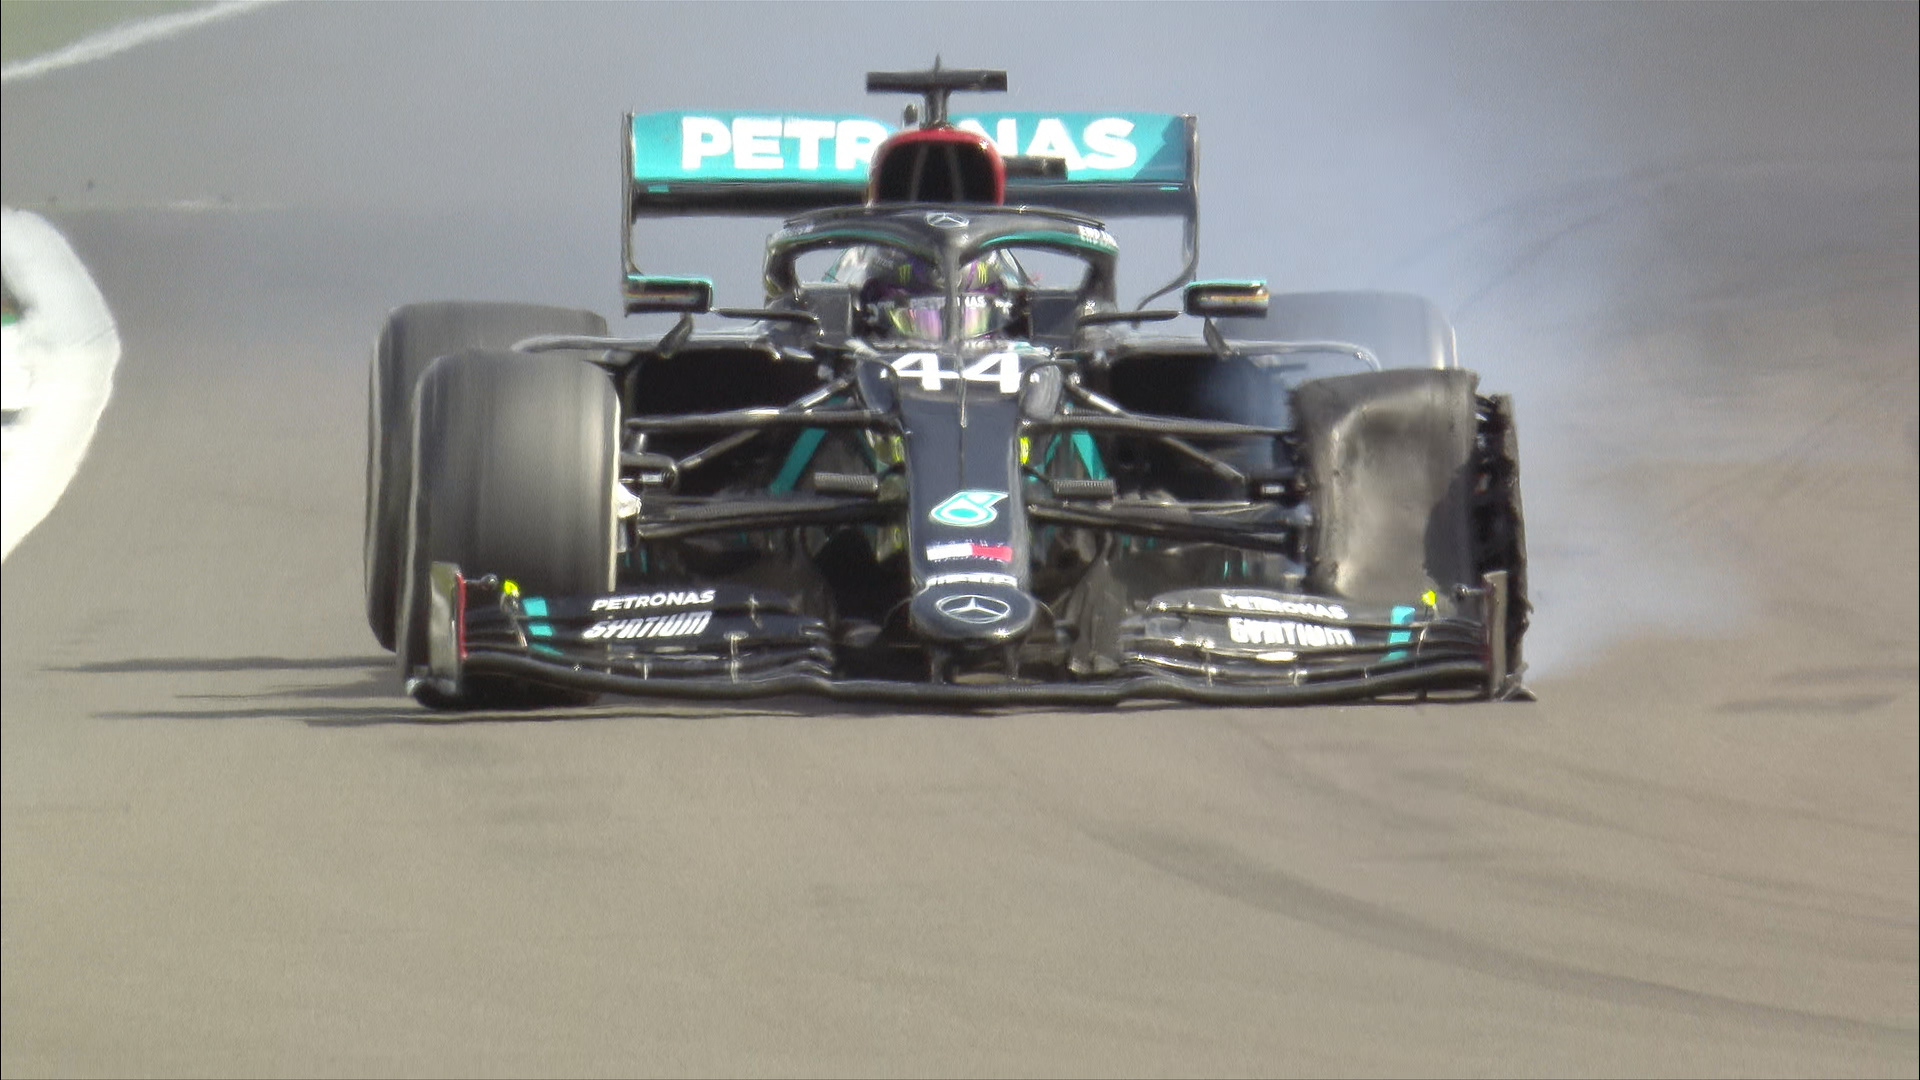 DATA ANALYSIS: How impressive was Lewis Hamilton's performance on three wheels in the British Grand Prix?